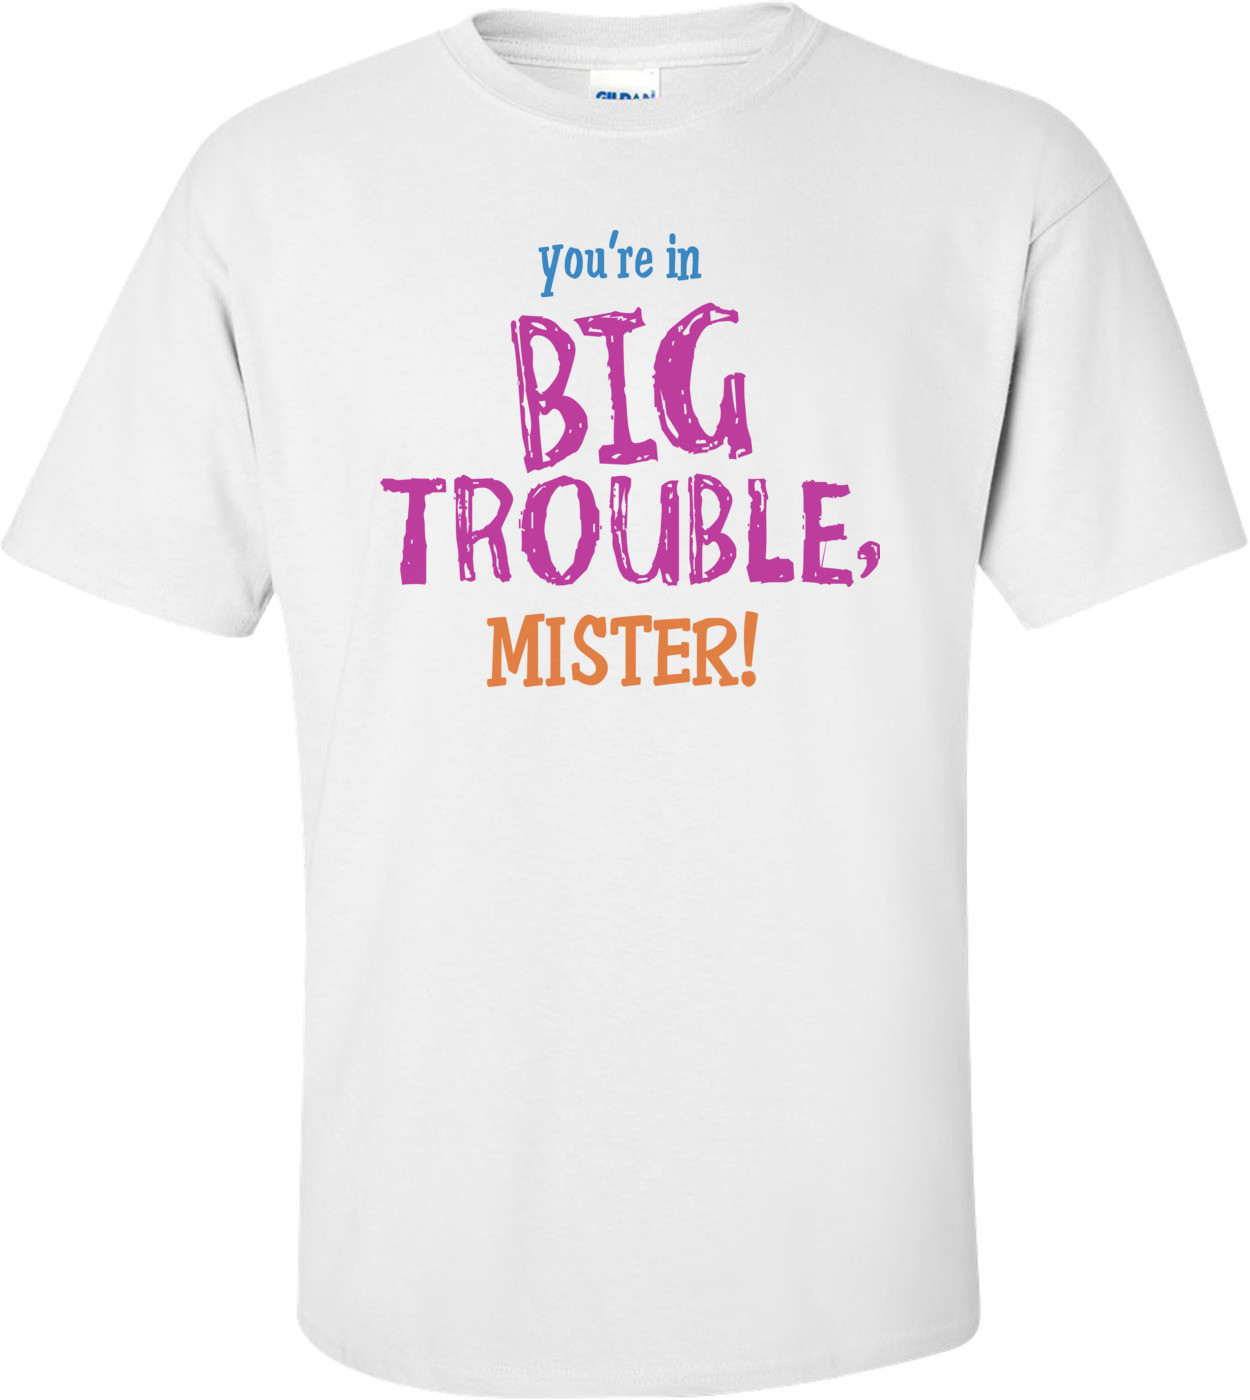 You're In Big Trouble Mister! T-shirt